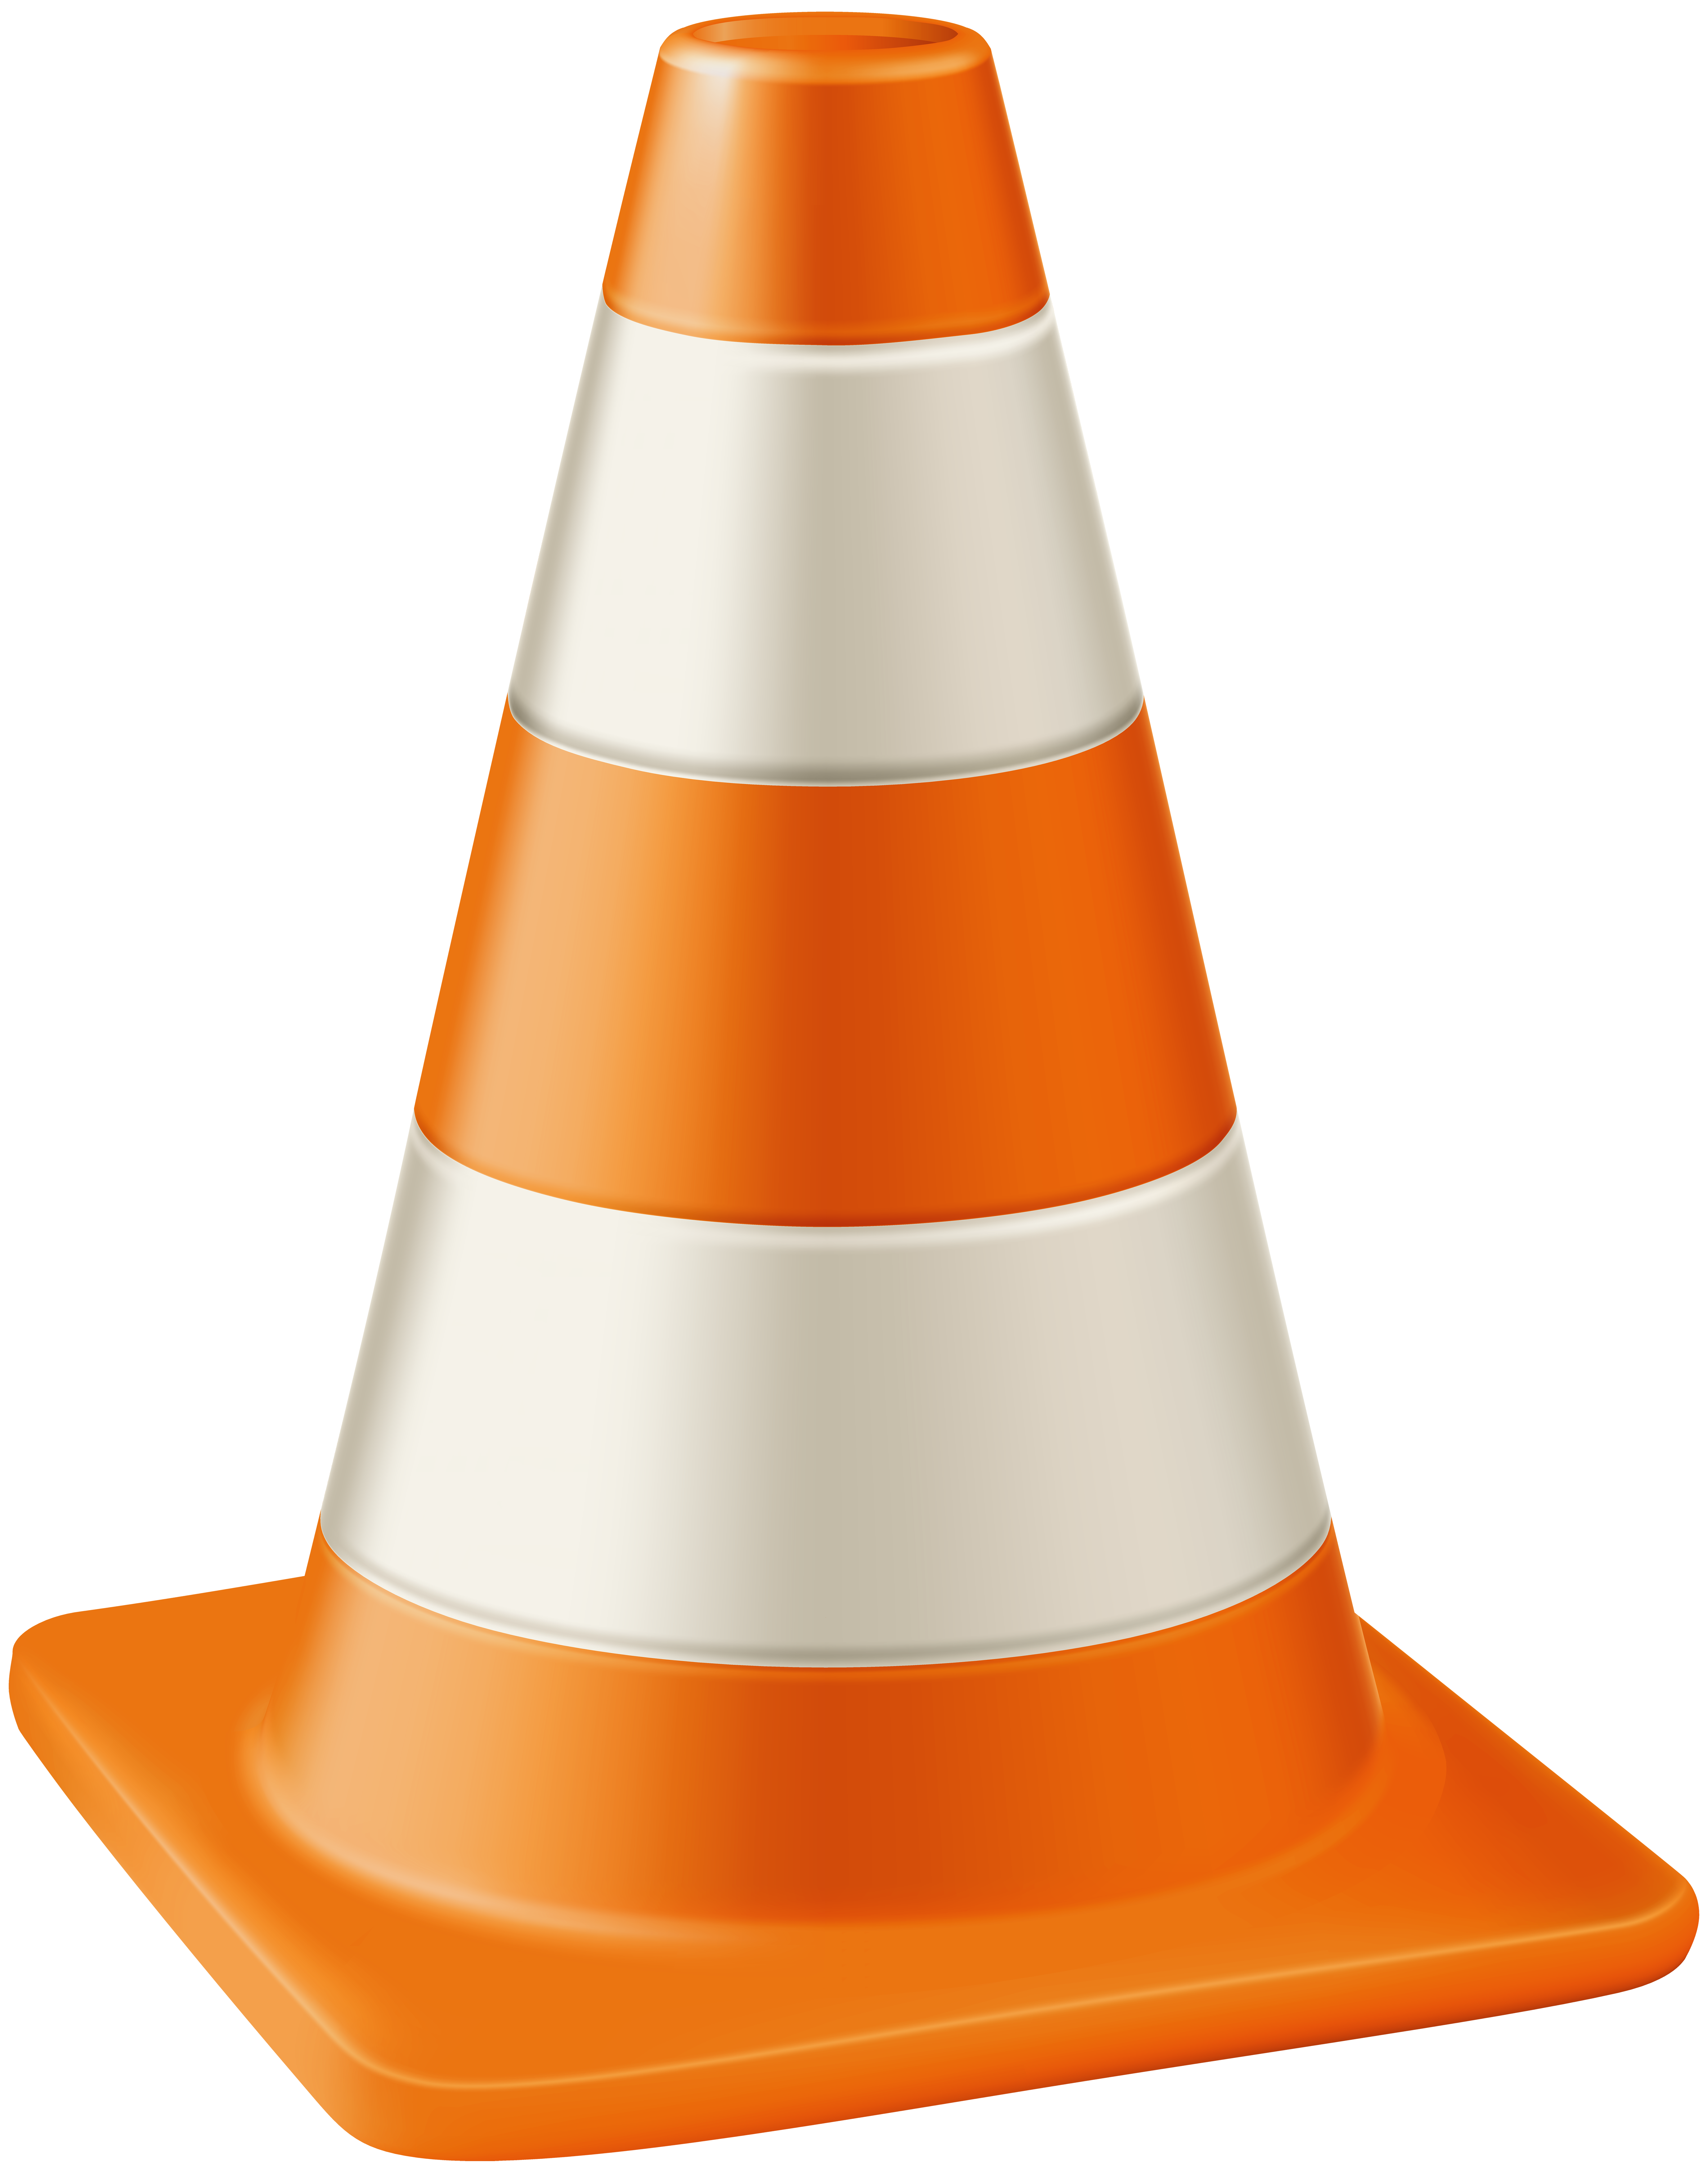 Traffic Cone Transparent PNG Clip Art Image.